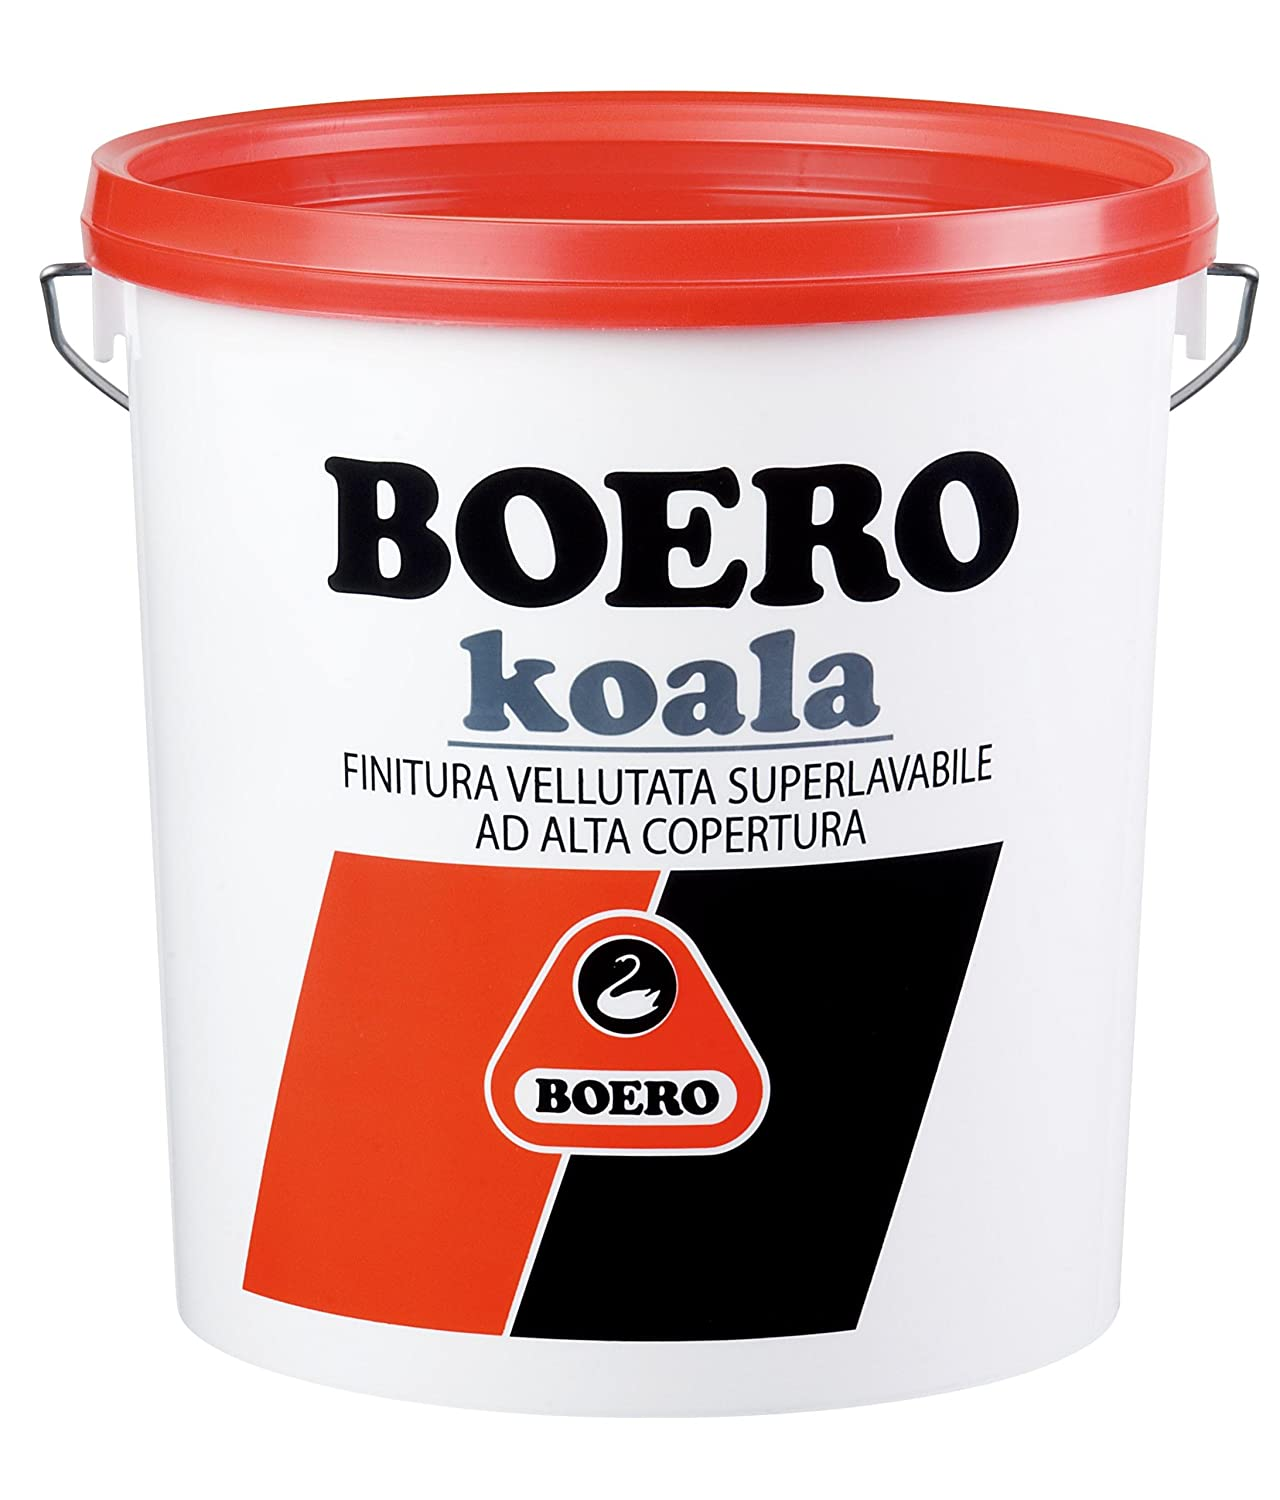 Pittura Per Interni Boero.Pittura Koala Bianco Bc 991 Lt 14 Boero 014774 Amazon It Commercio Industria E Scienza